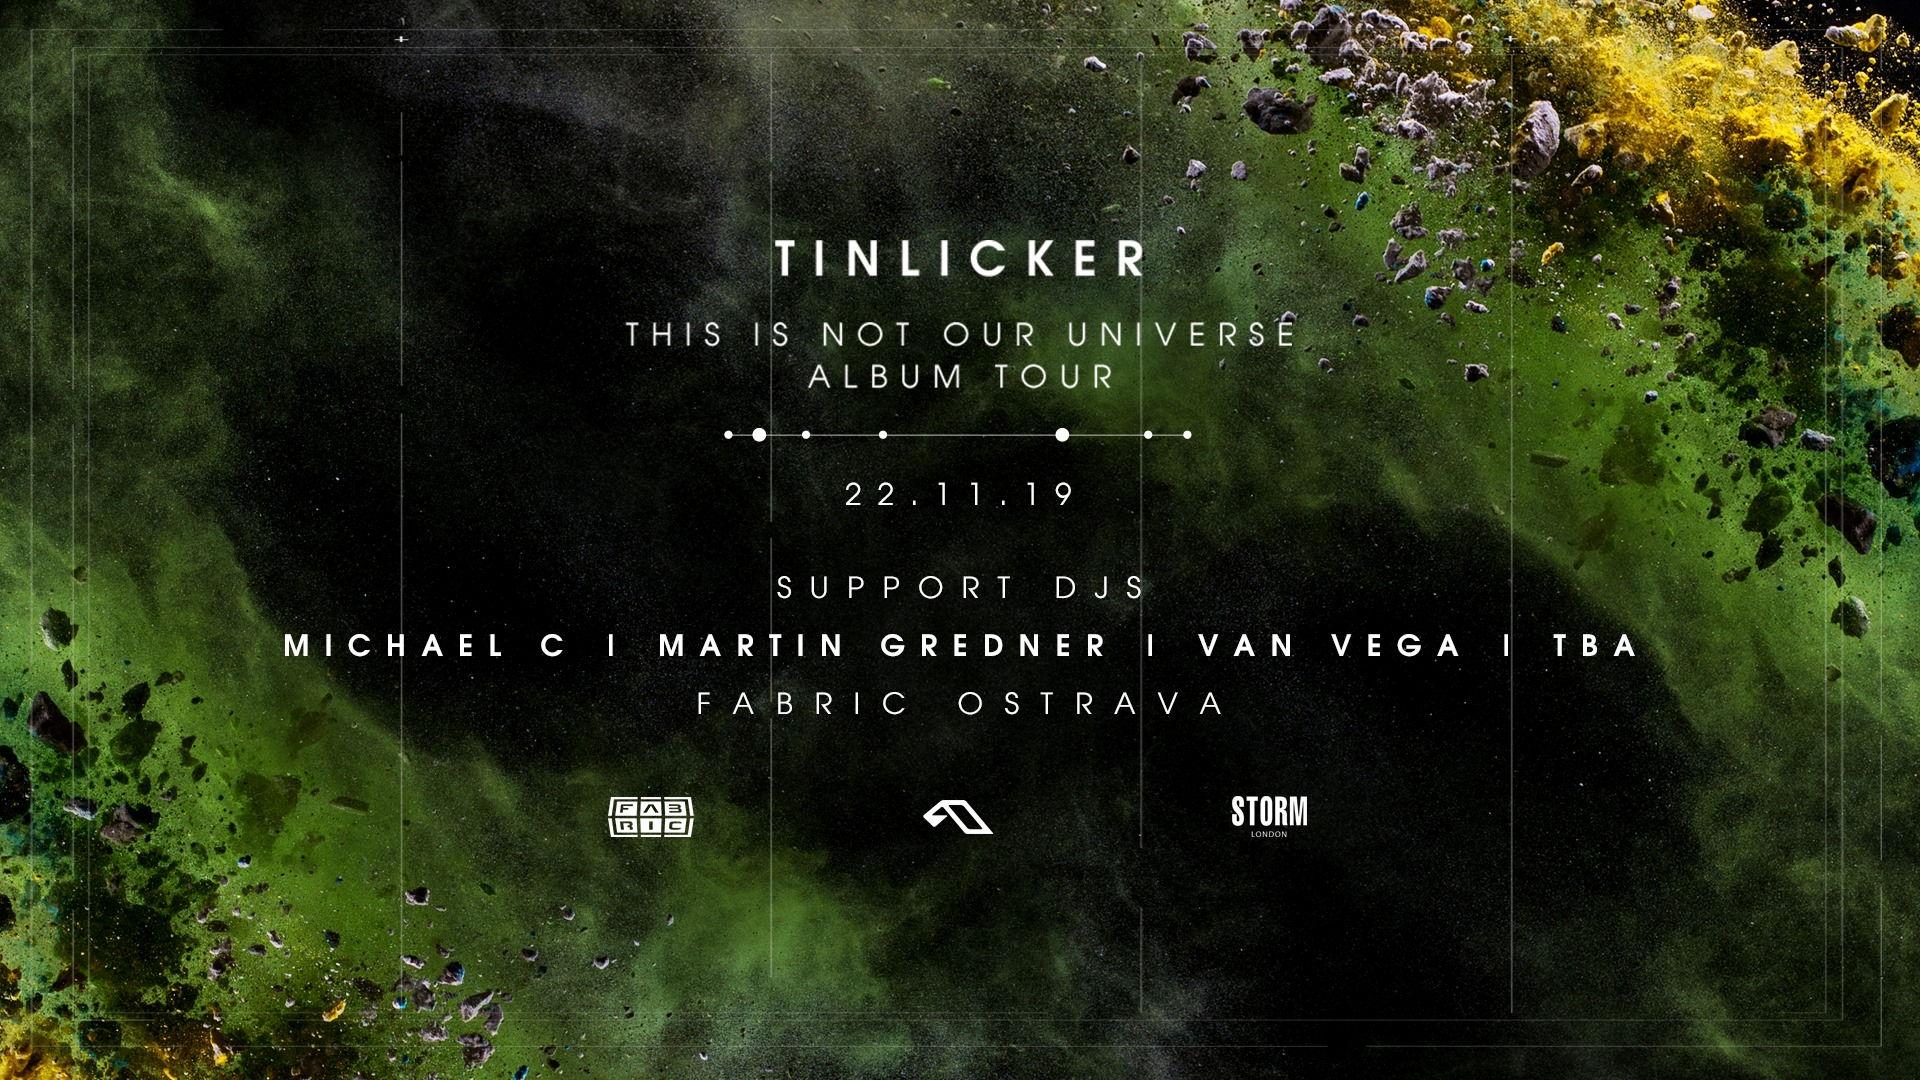 TINLICKER: This Is Not Our Universe Album Tour flyer